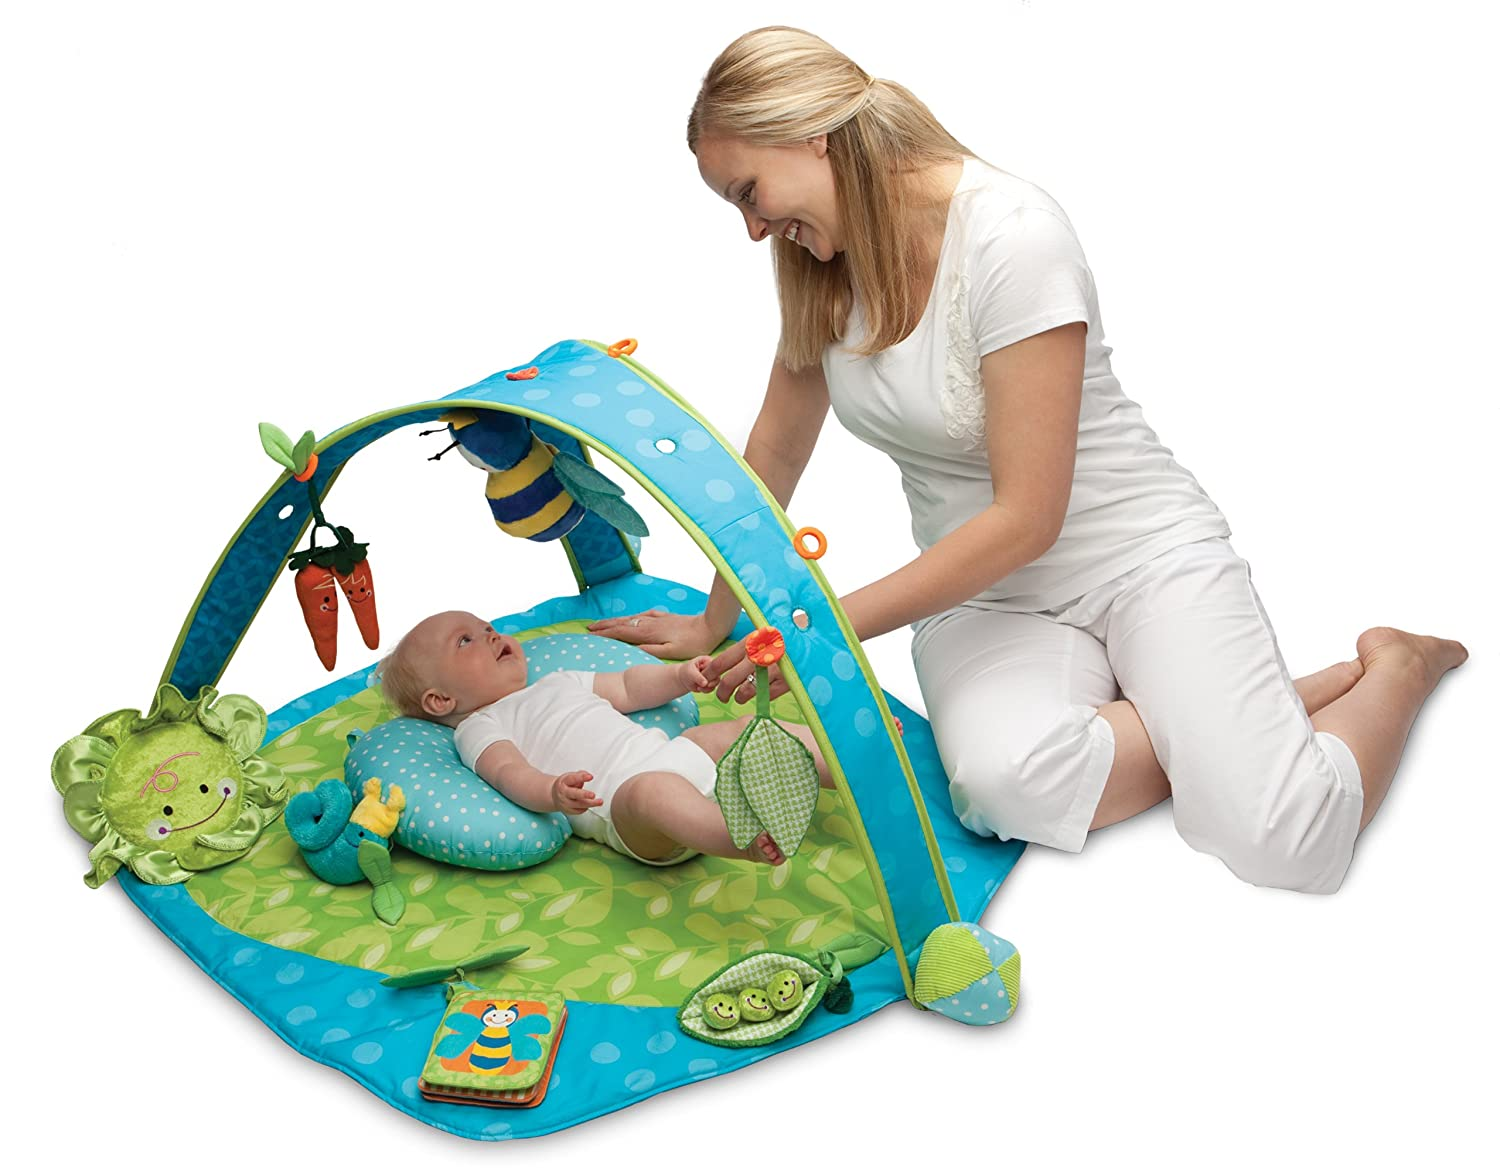 Superior Amazon.com : Boppy EntertainMe Play Gym, Garden Patch (Discontinued By  Manufacturer) : Early Development Playmats : Baby